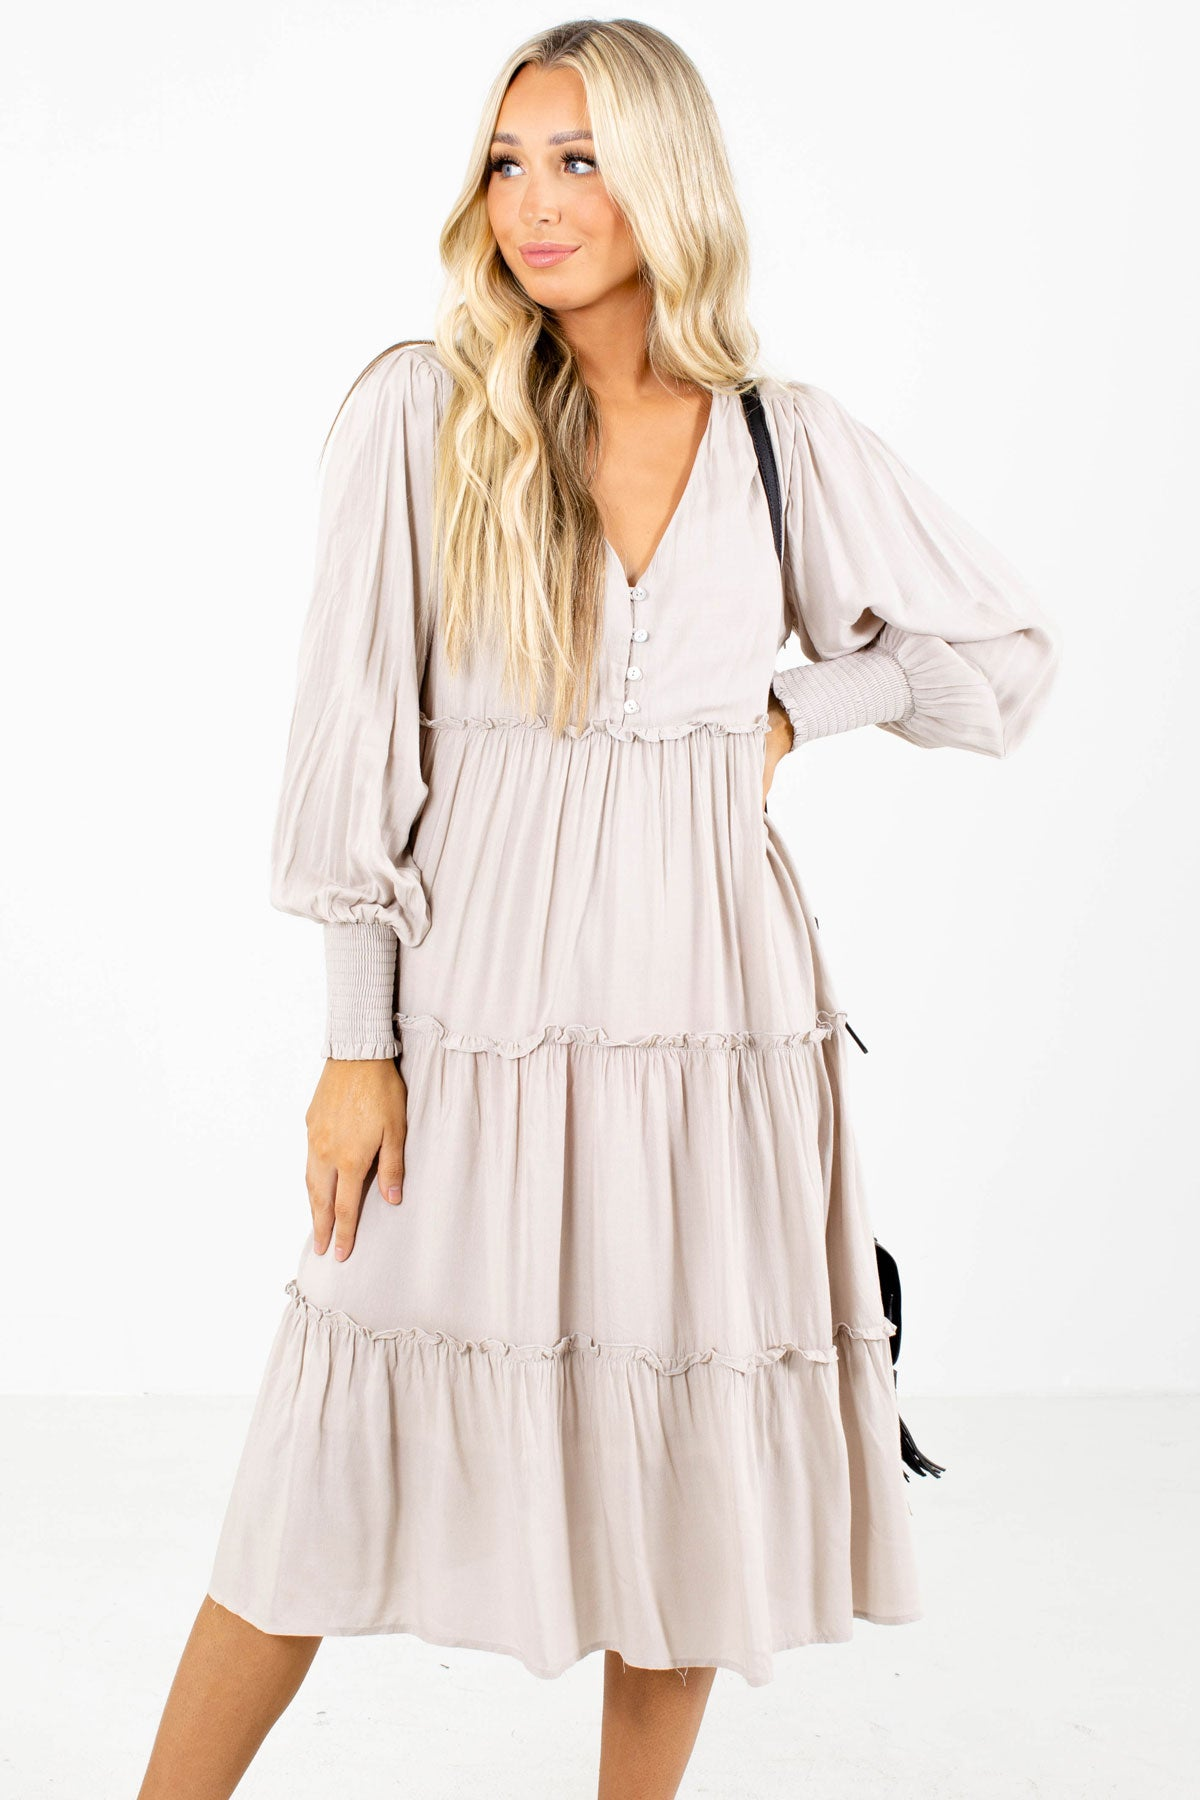 Beige Button-Up Bodice Boutique Midi Dresses for Women